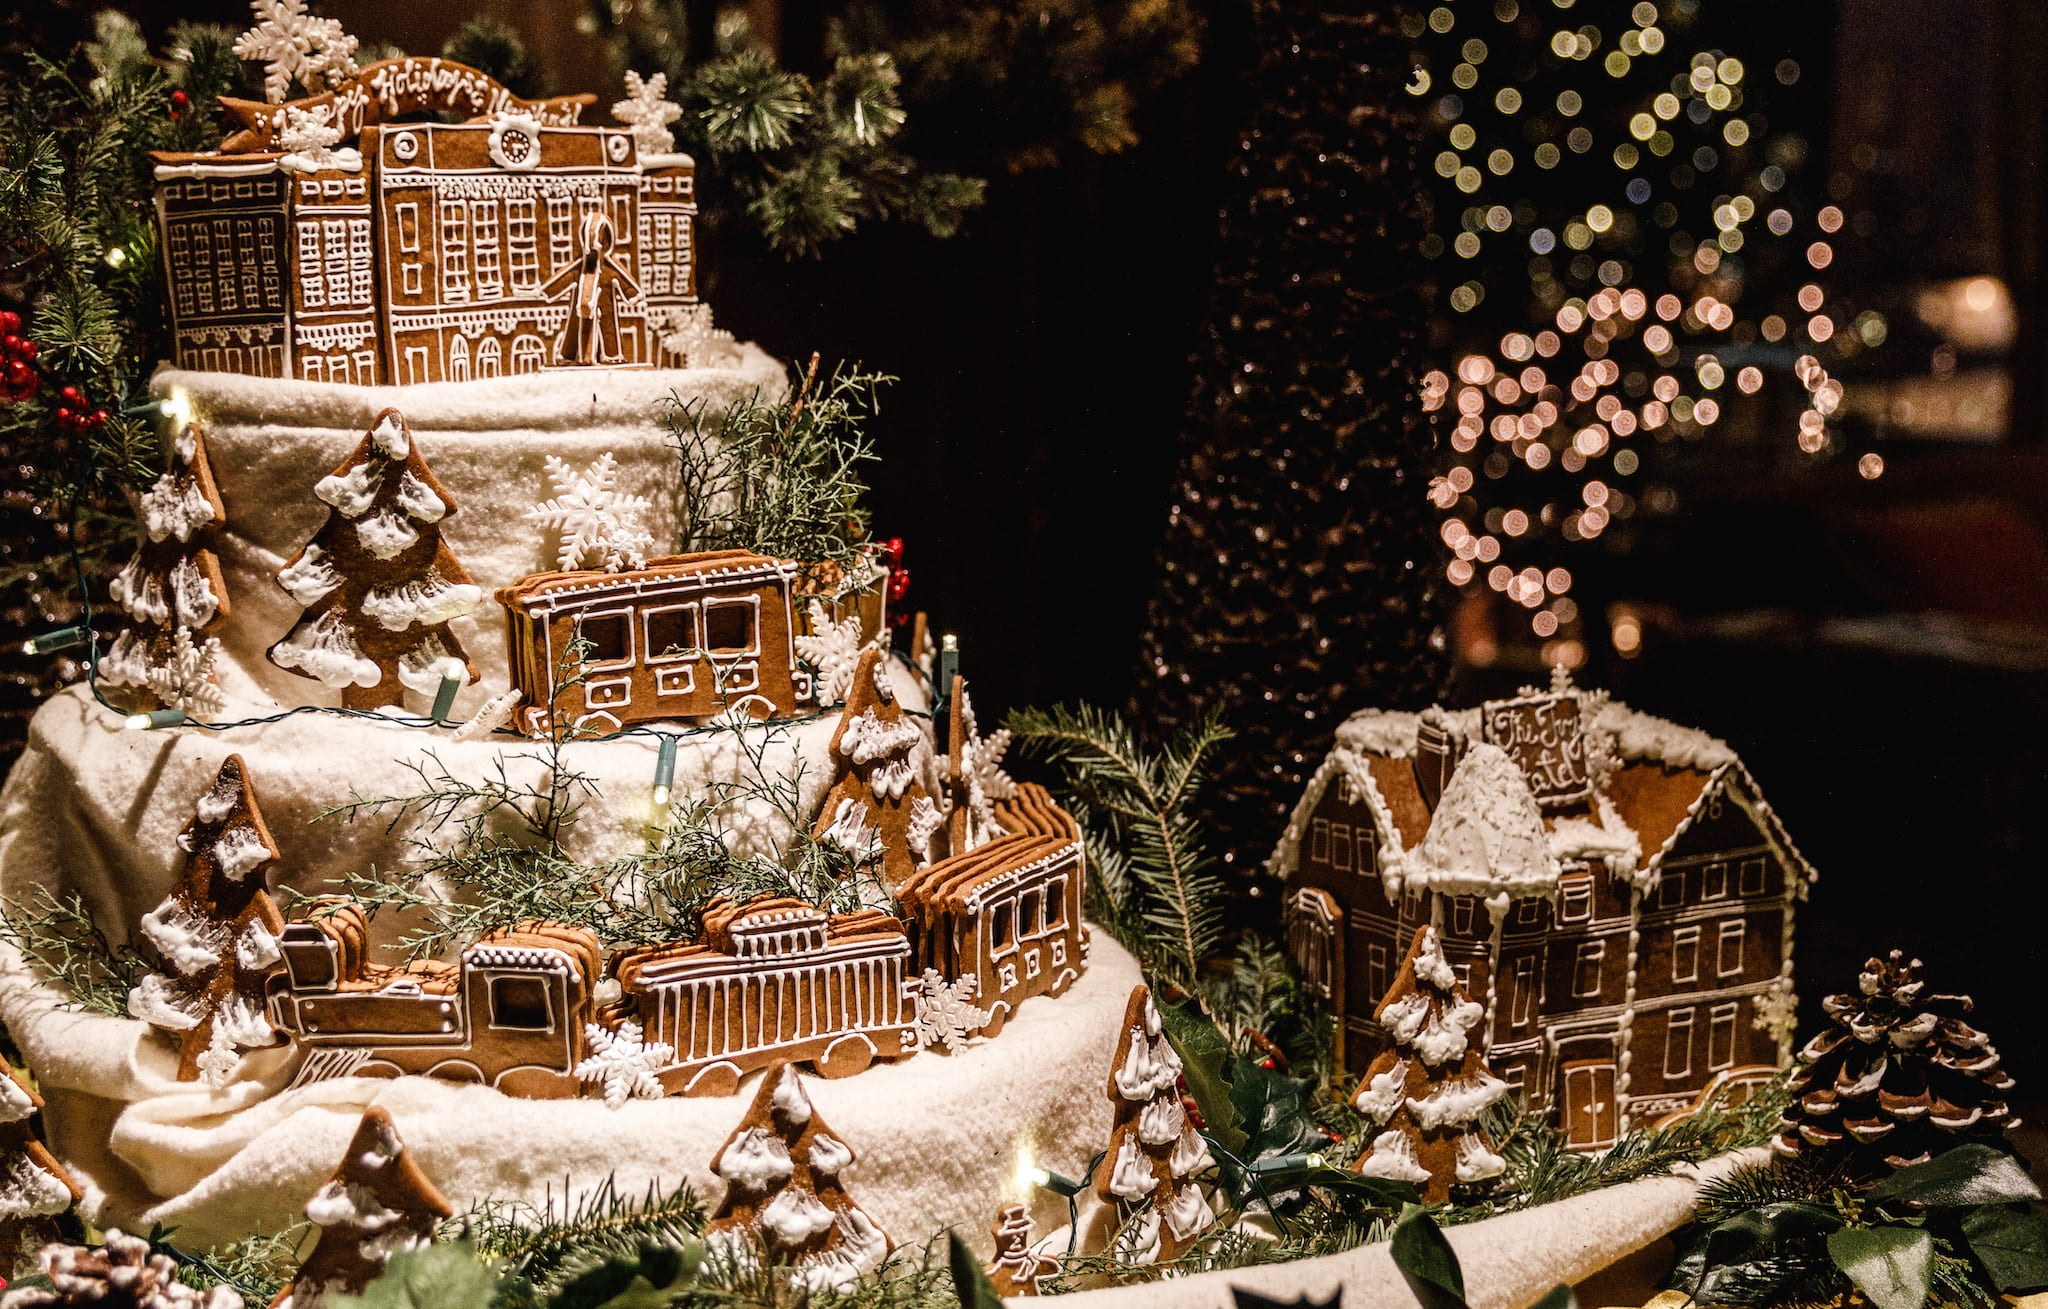 Gingerbread display of Balttimore's Penn Station and The Ivy Hotel on a table.